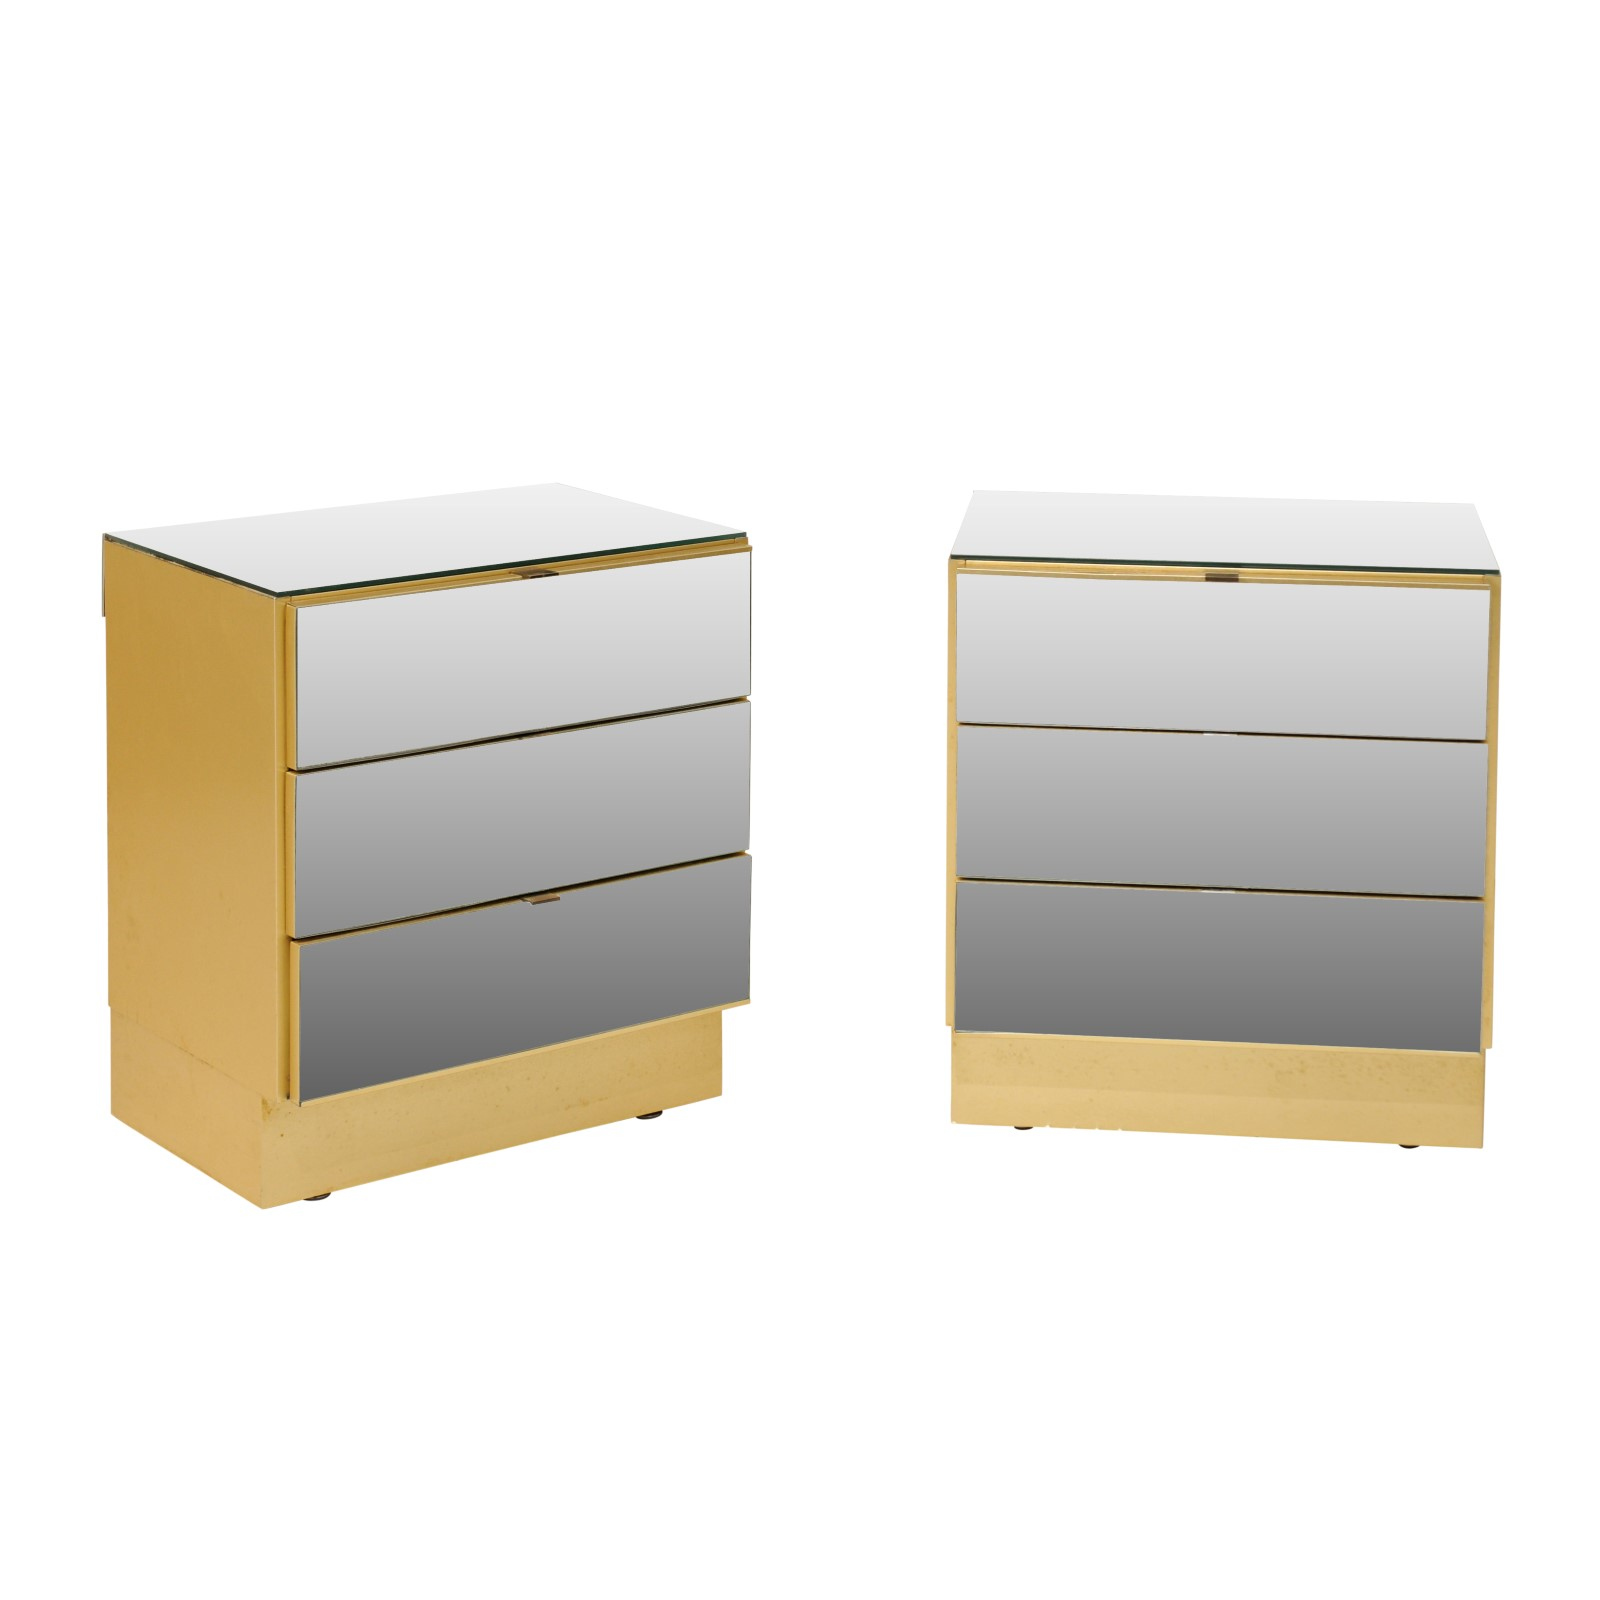 A Pair of Modern Mirrored Chests